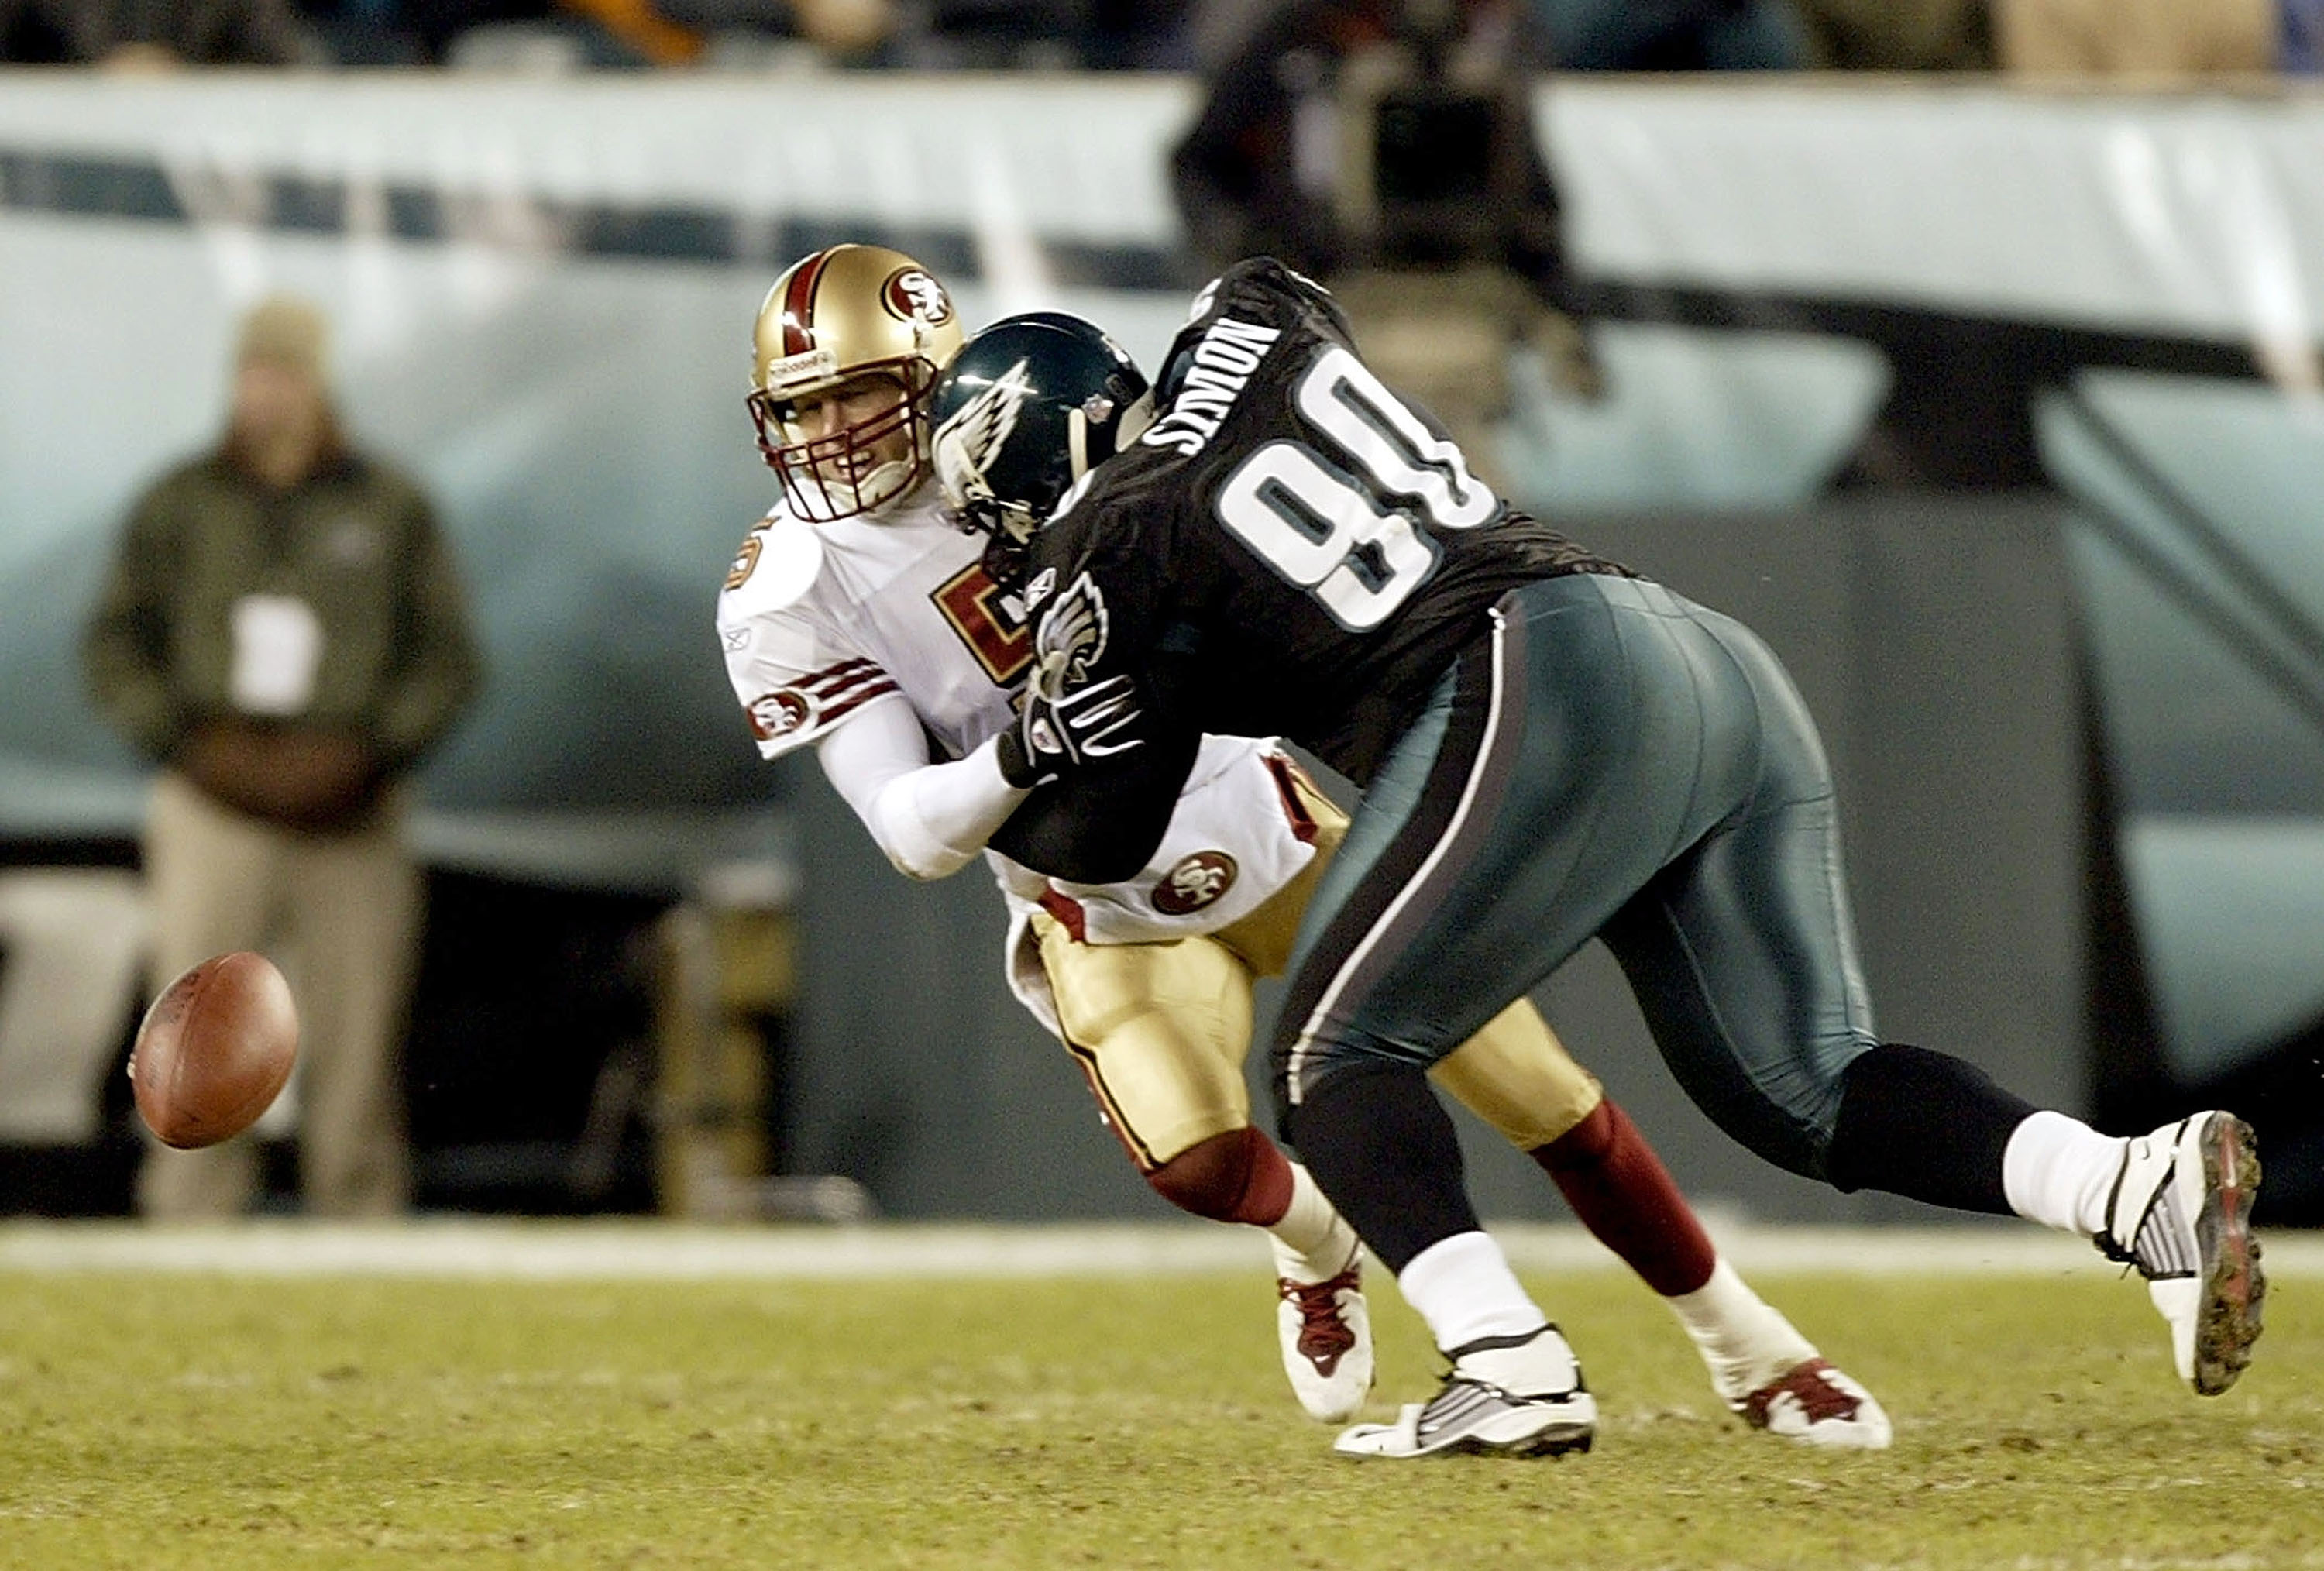 PHILADELPHIA - DECEMBER 21:  Quarterback Jeff Garcia #5 of the San Francisco 49ers fumbles the ball after being hit by Corey Simon #90 of the Philadelphia Eagles on December 21, 2003 at Lincoln Financial Field in Philadelphia, Pennsylvania.  (Photo by Ezr